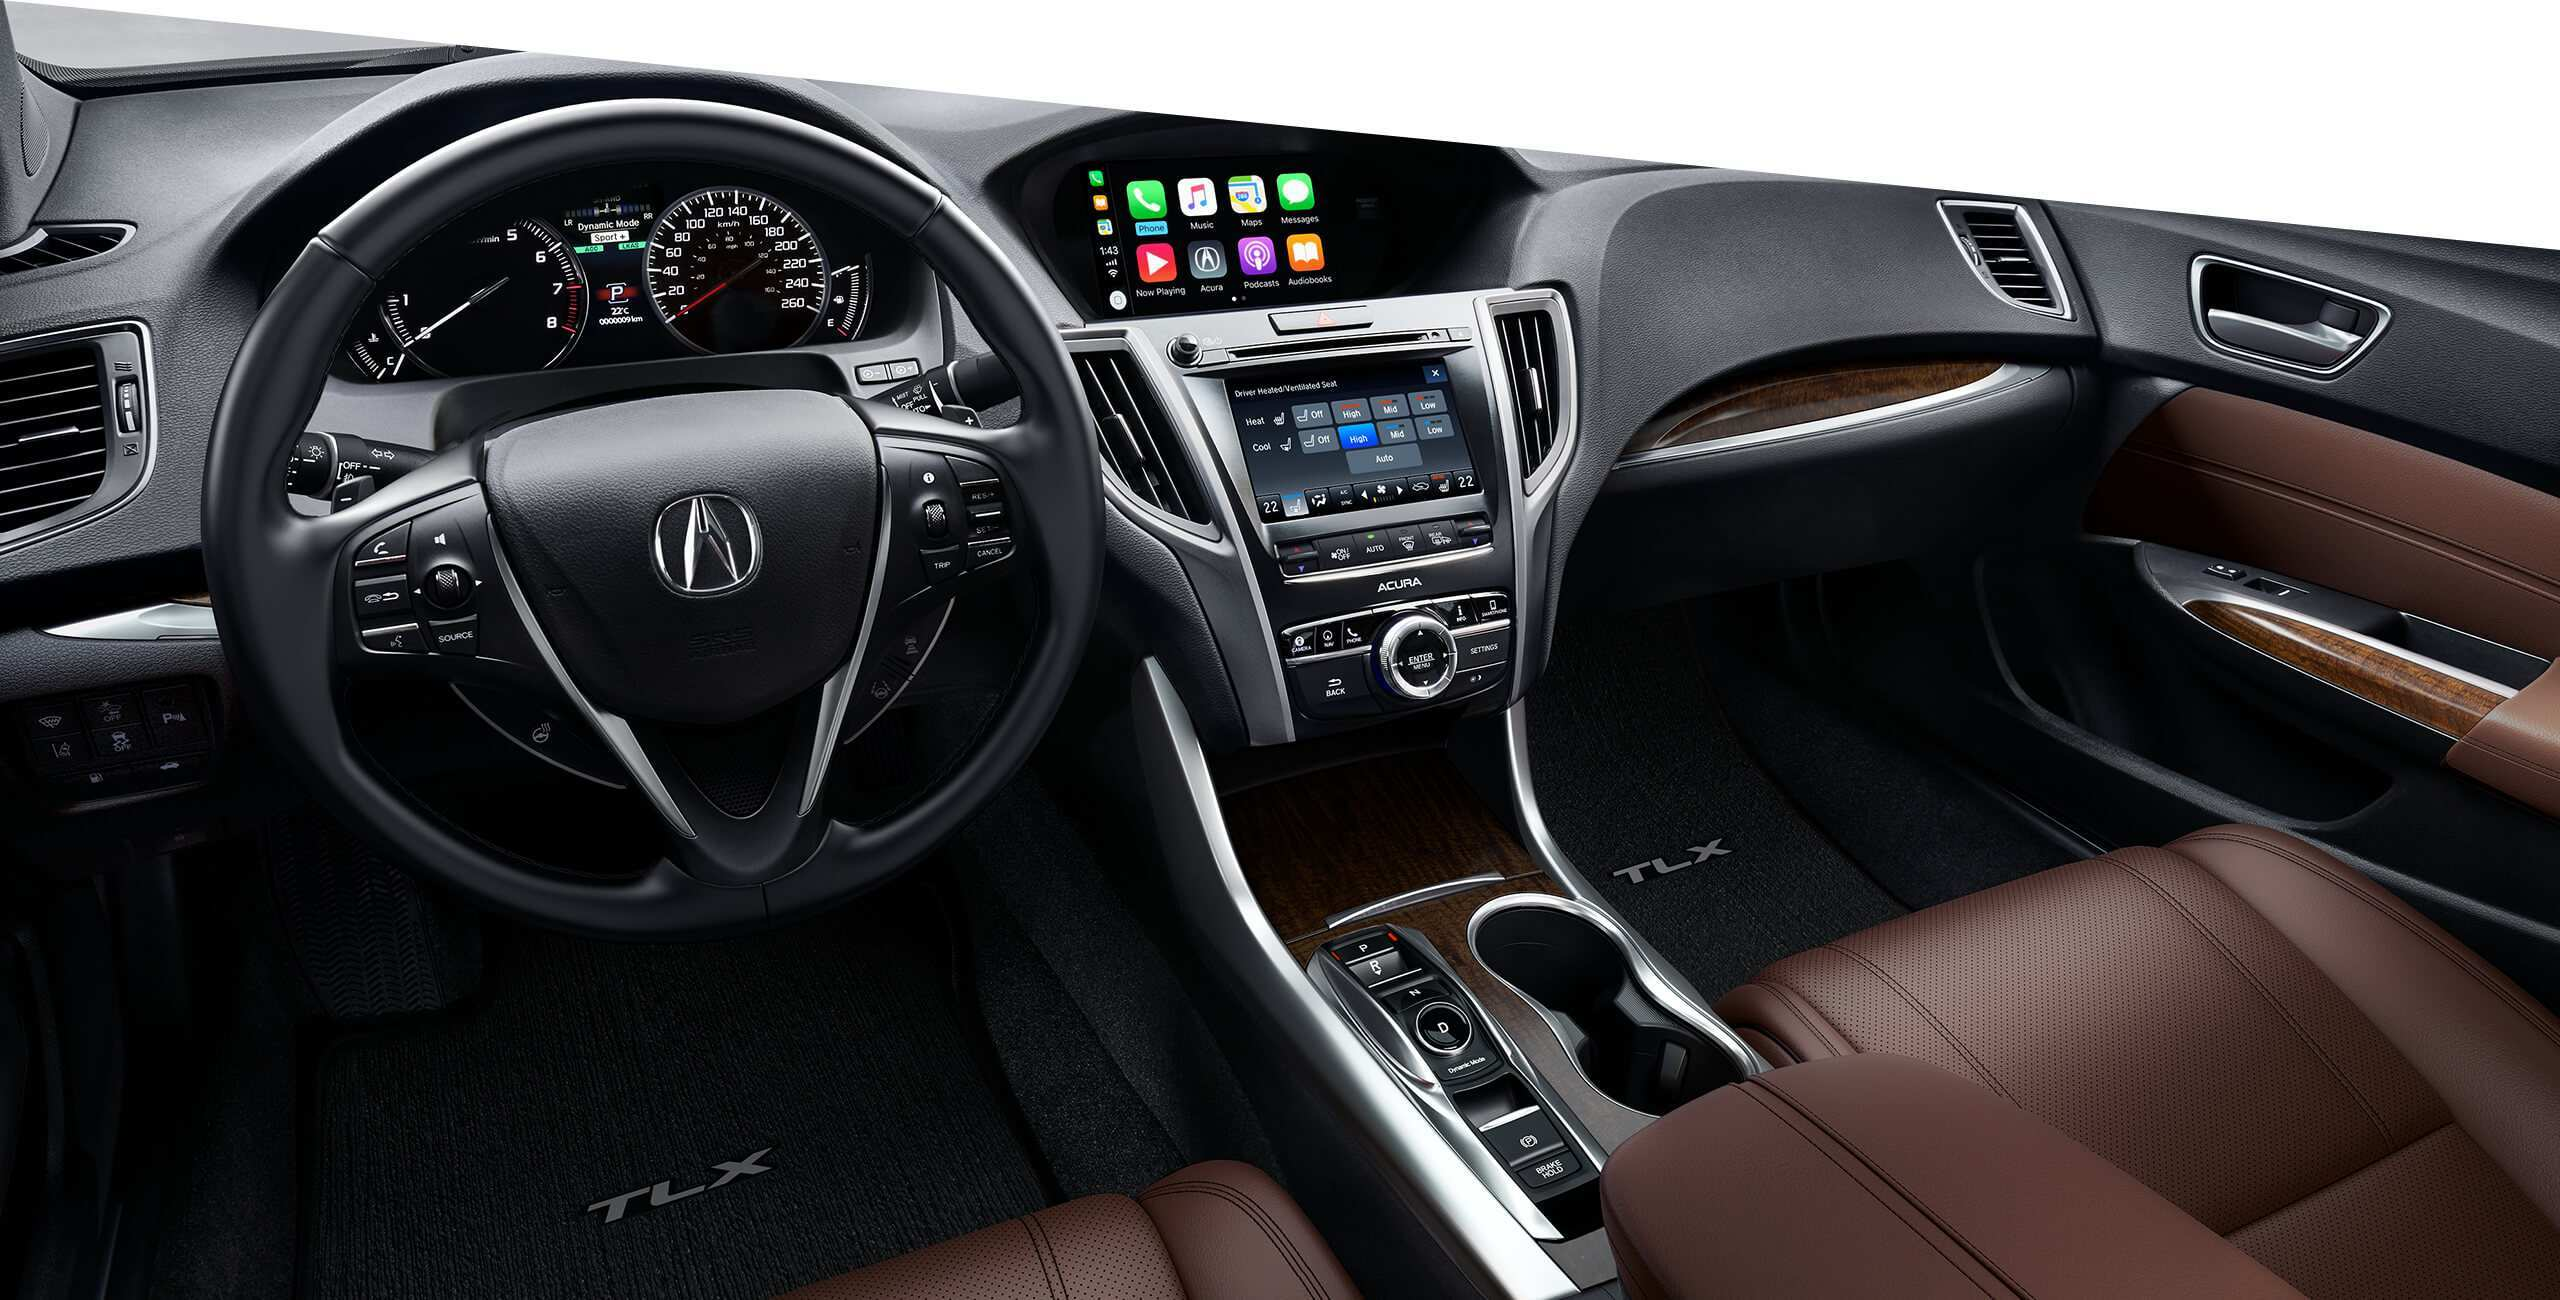 72 Best Review Acura Tlx 2020 Interior Exterior and Interior by Acura Tlx 2020 Interior